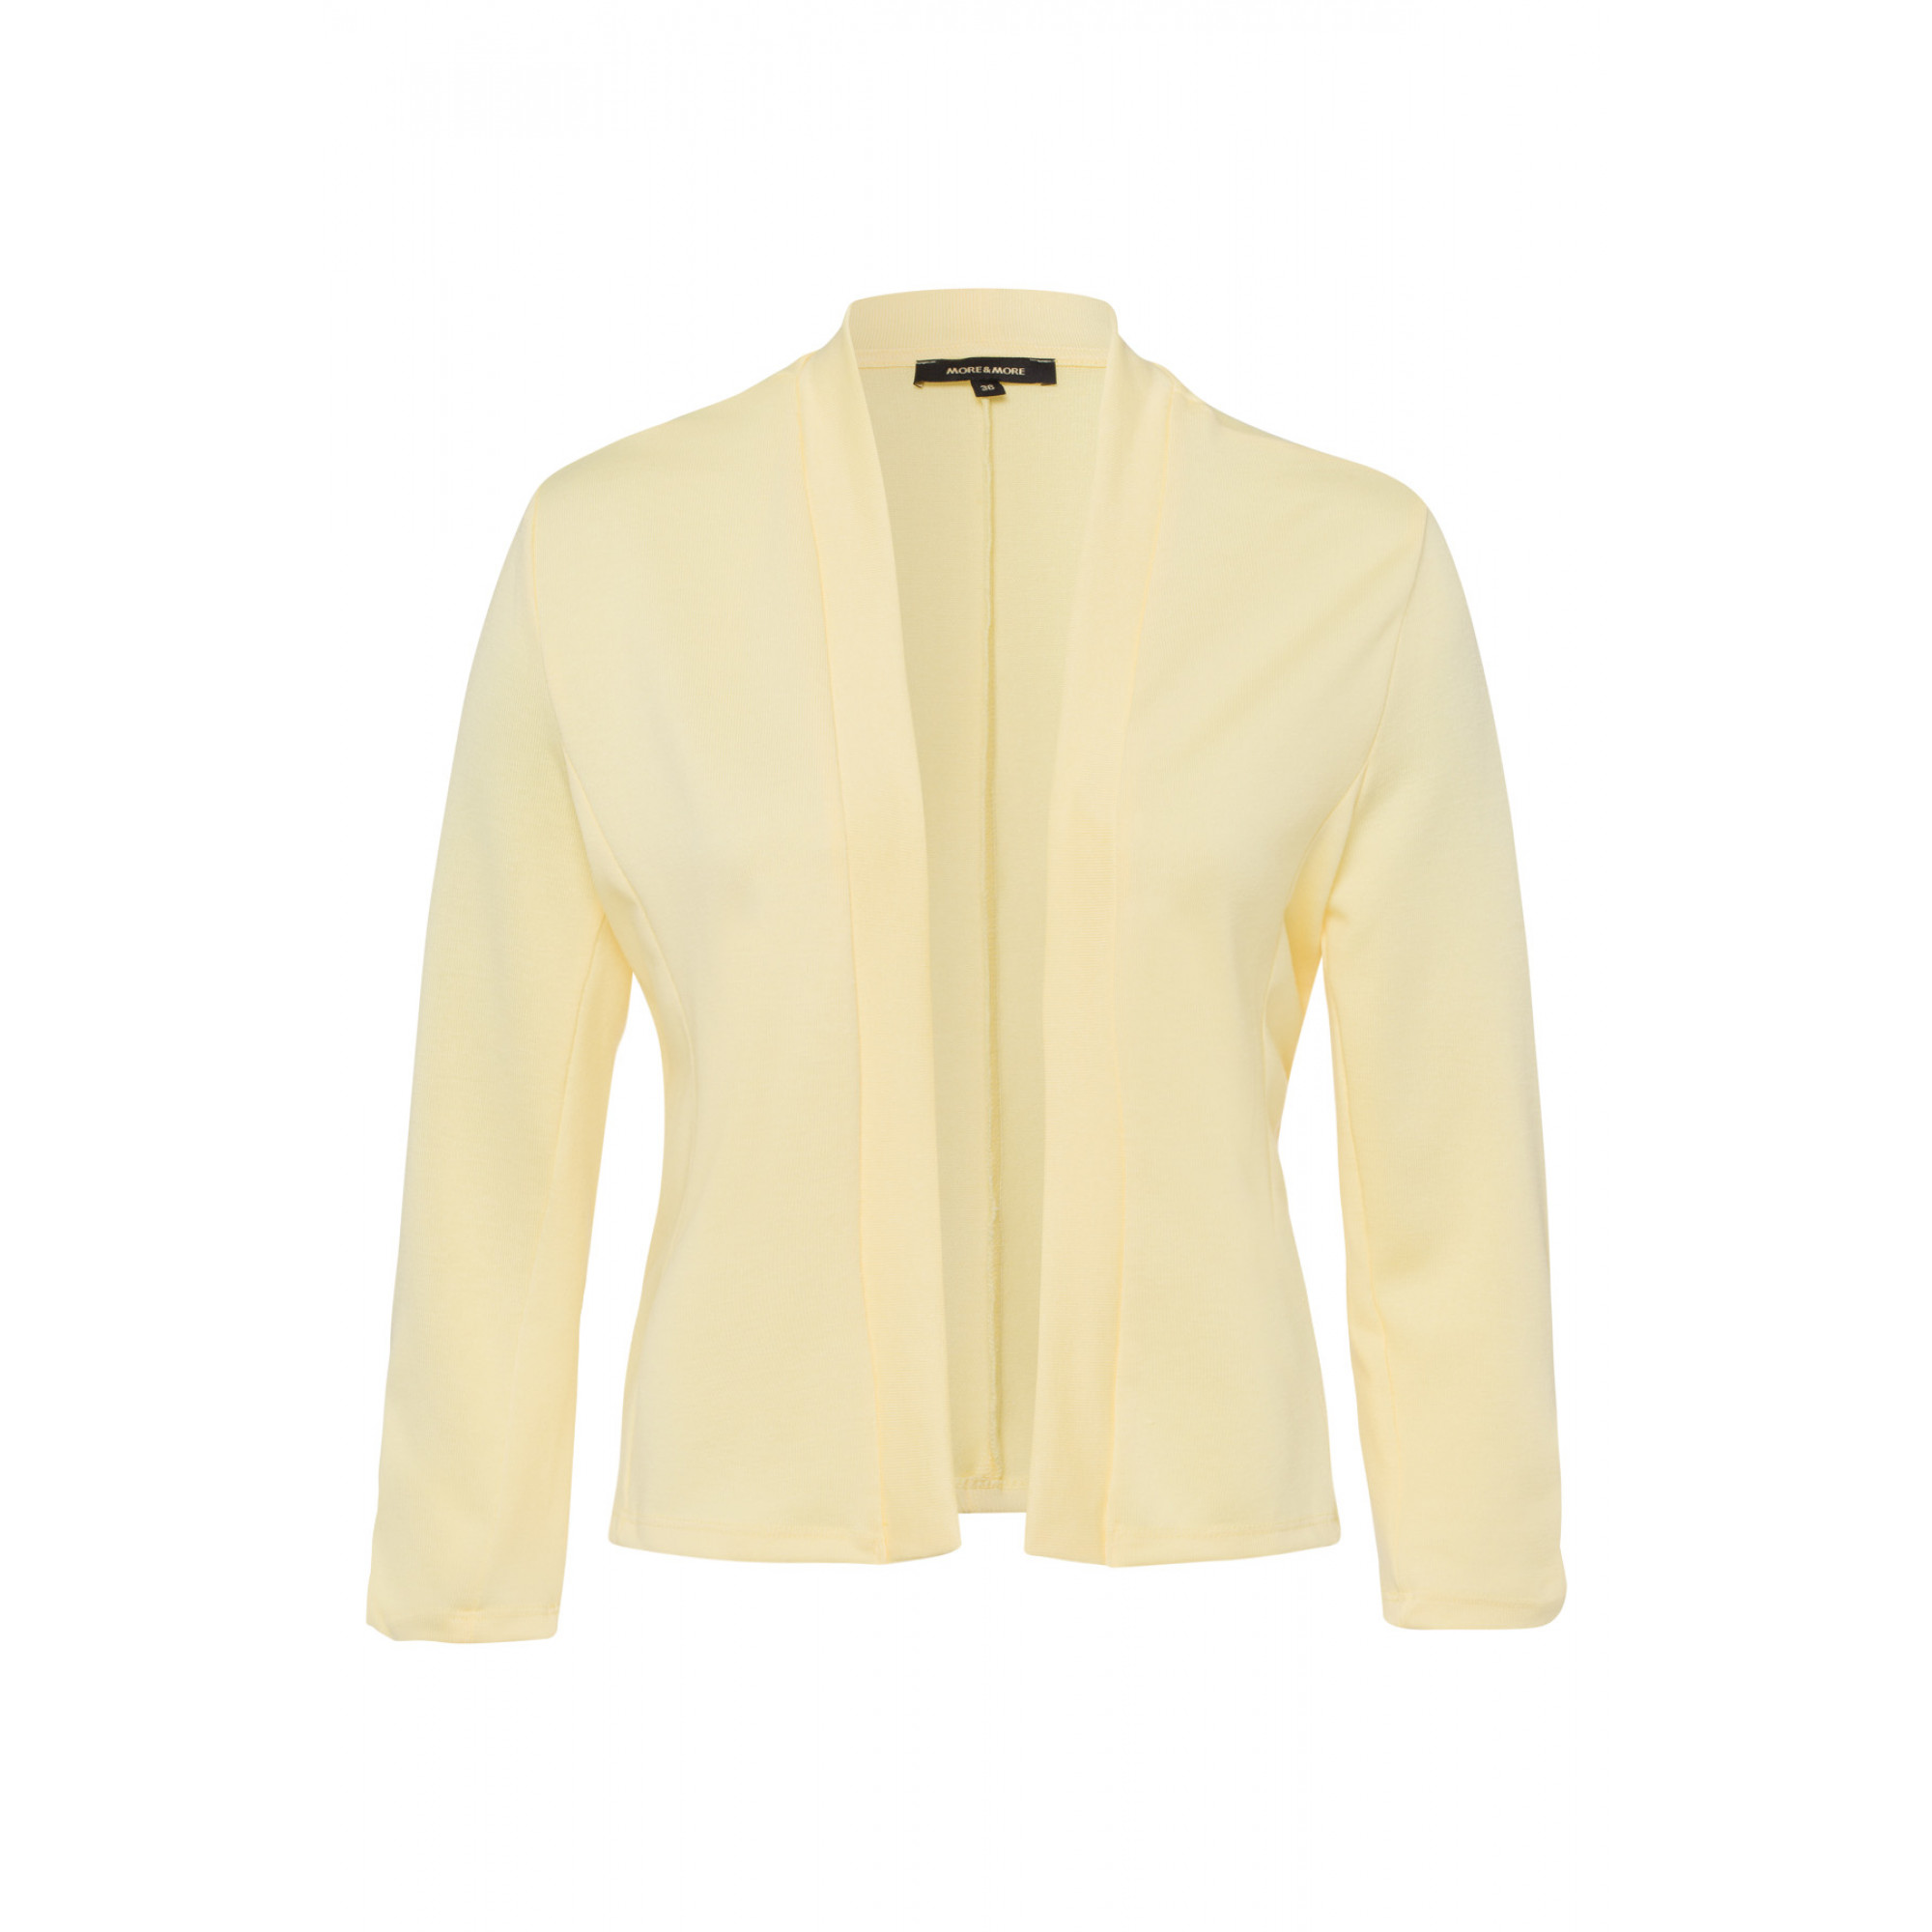 Shirtjacke, pastel yellow 01050022-0128 1